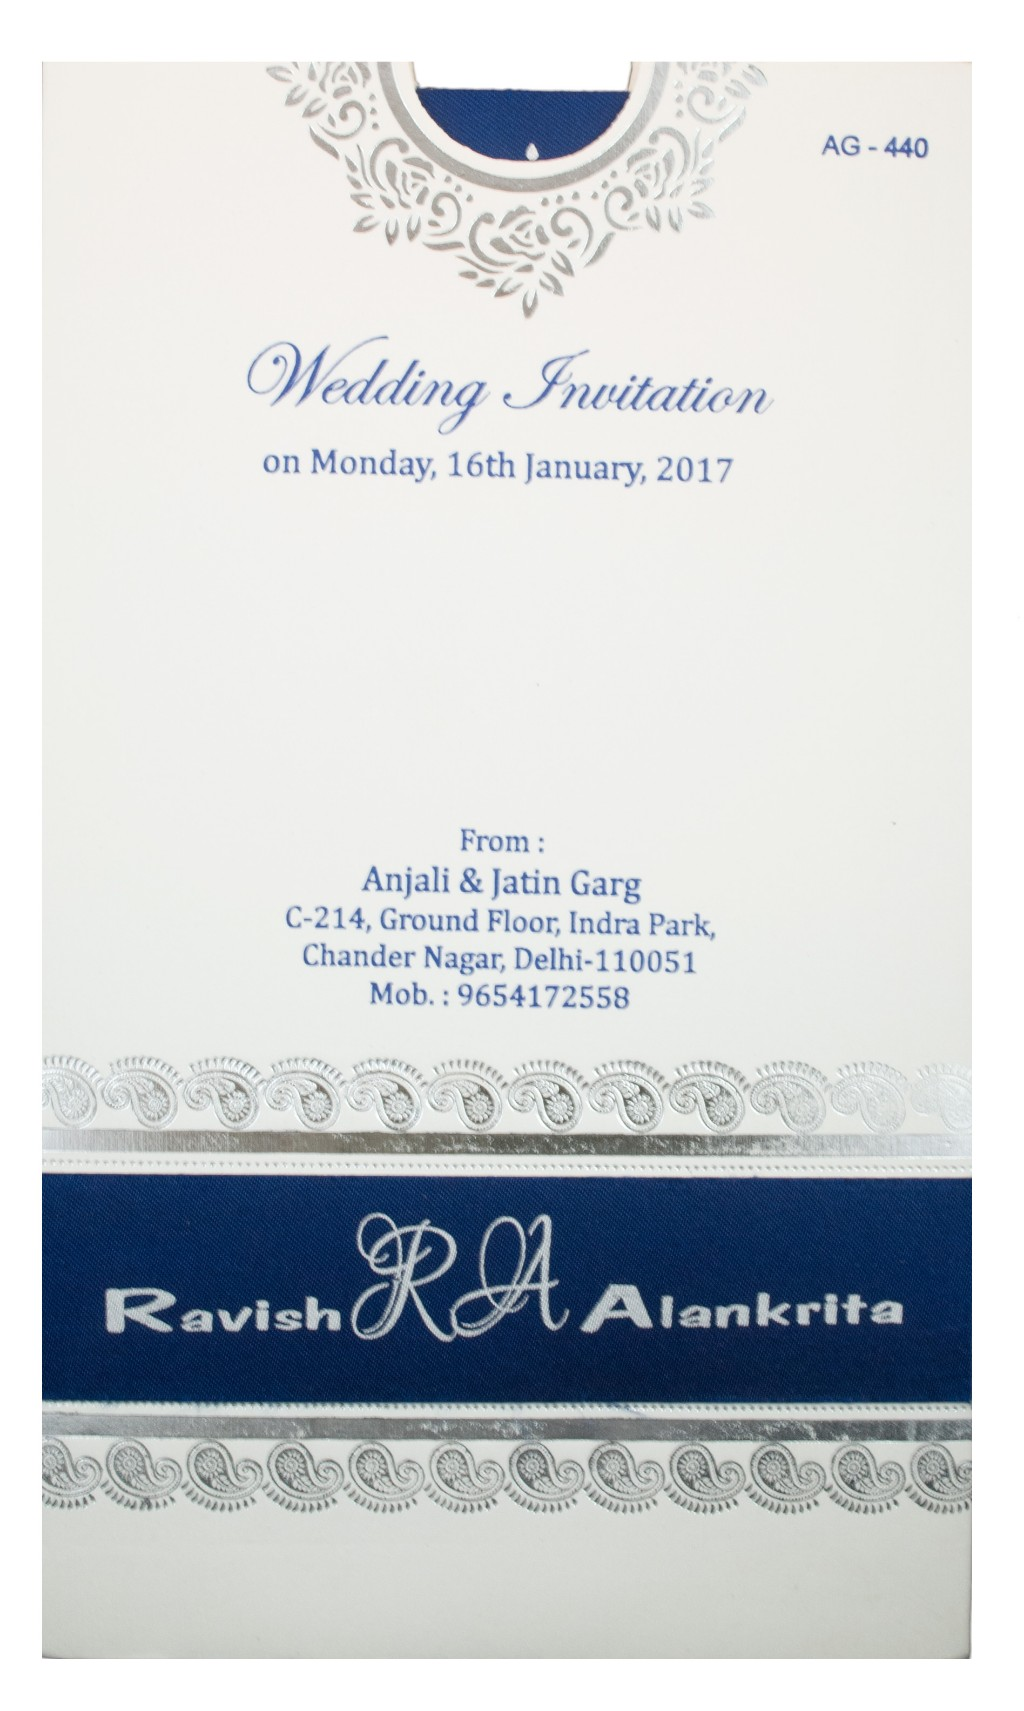 Wedding Invite in blue and white with pullout inserts